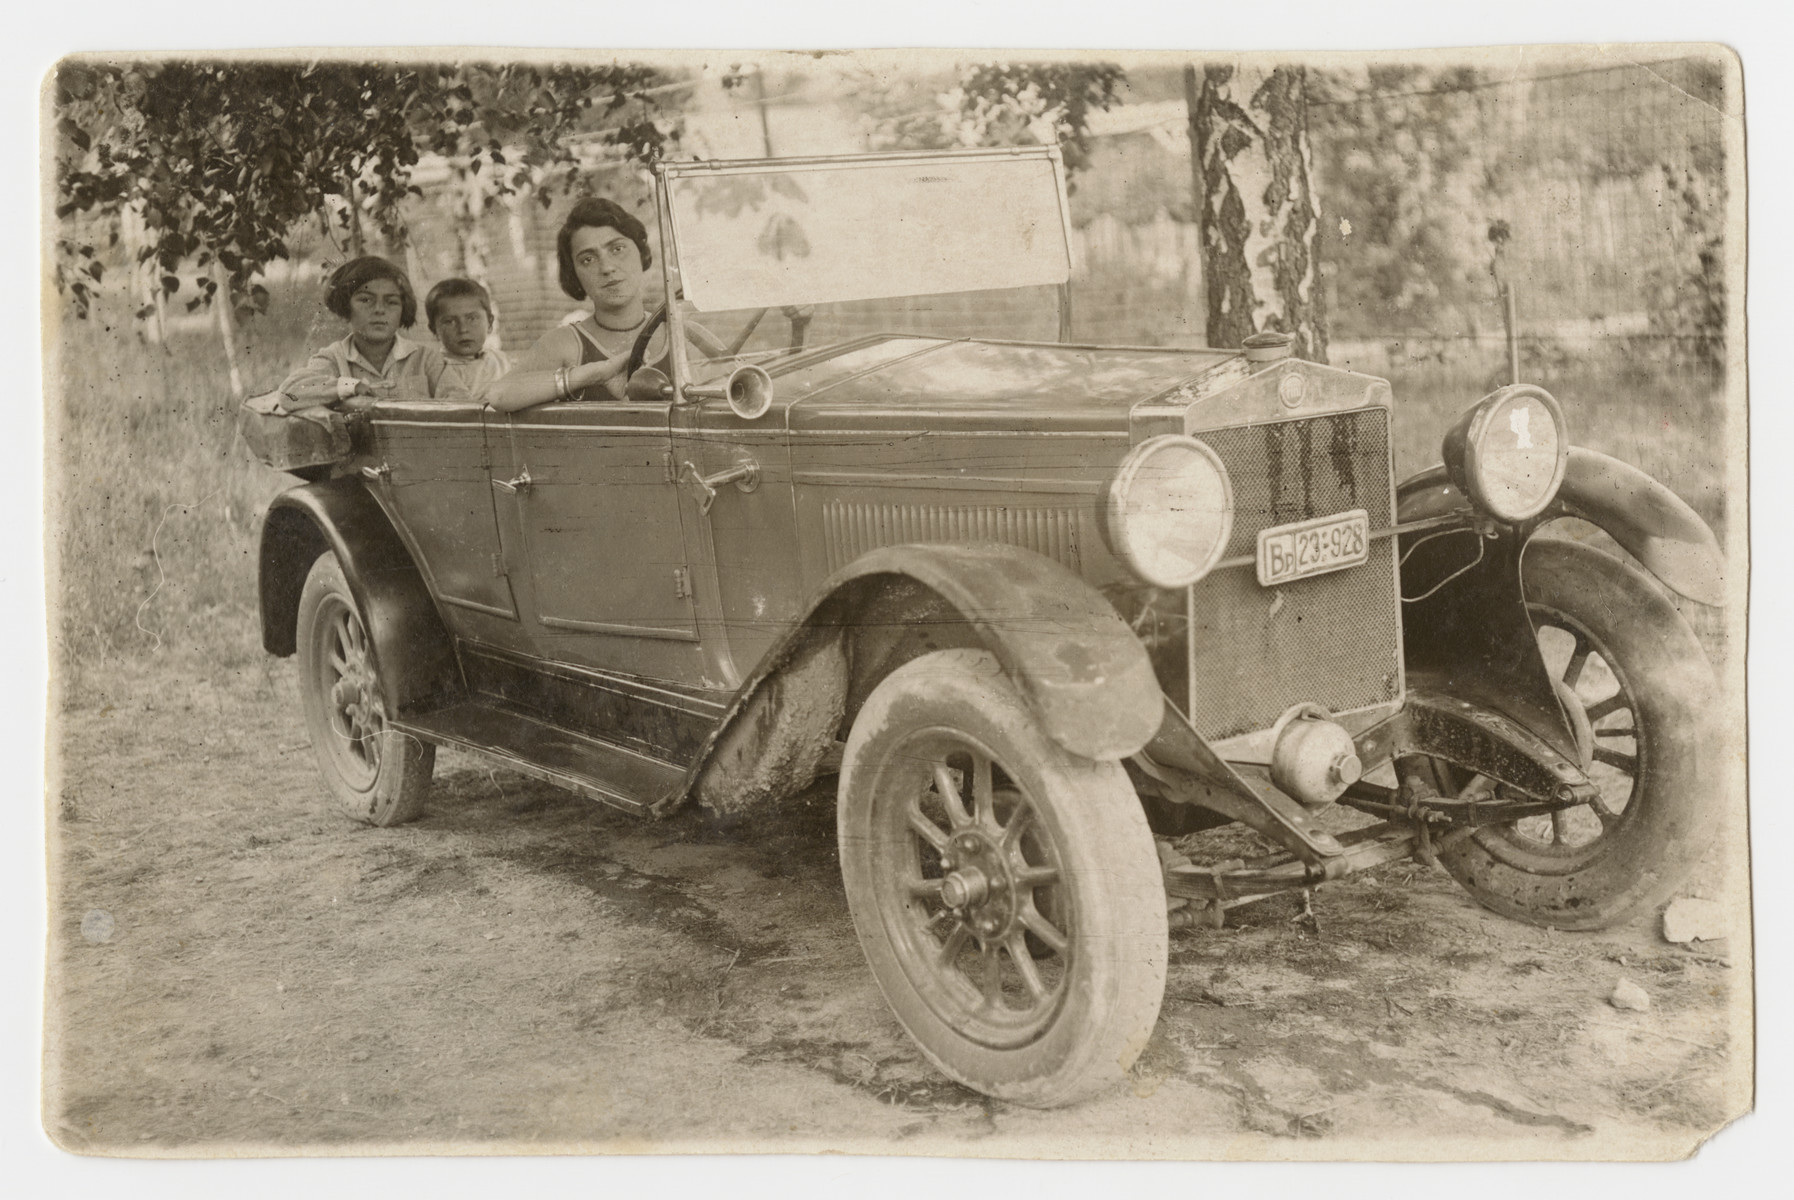 Family goes for a ride in their private automobile.  Pictured are Sara Koranyi and her children Marta and Erwin.